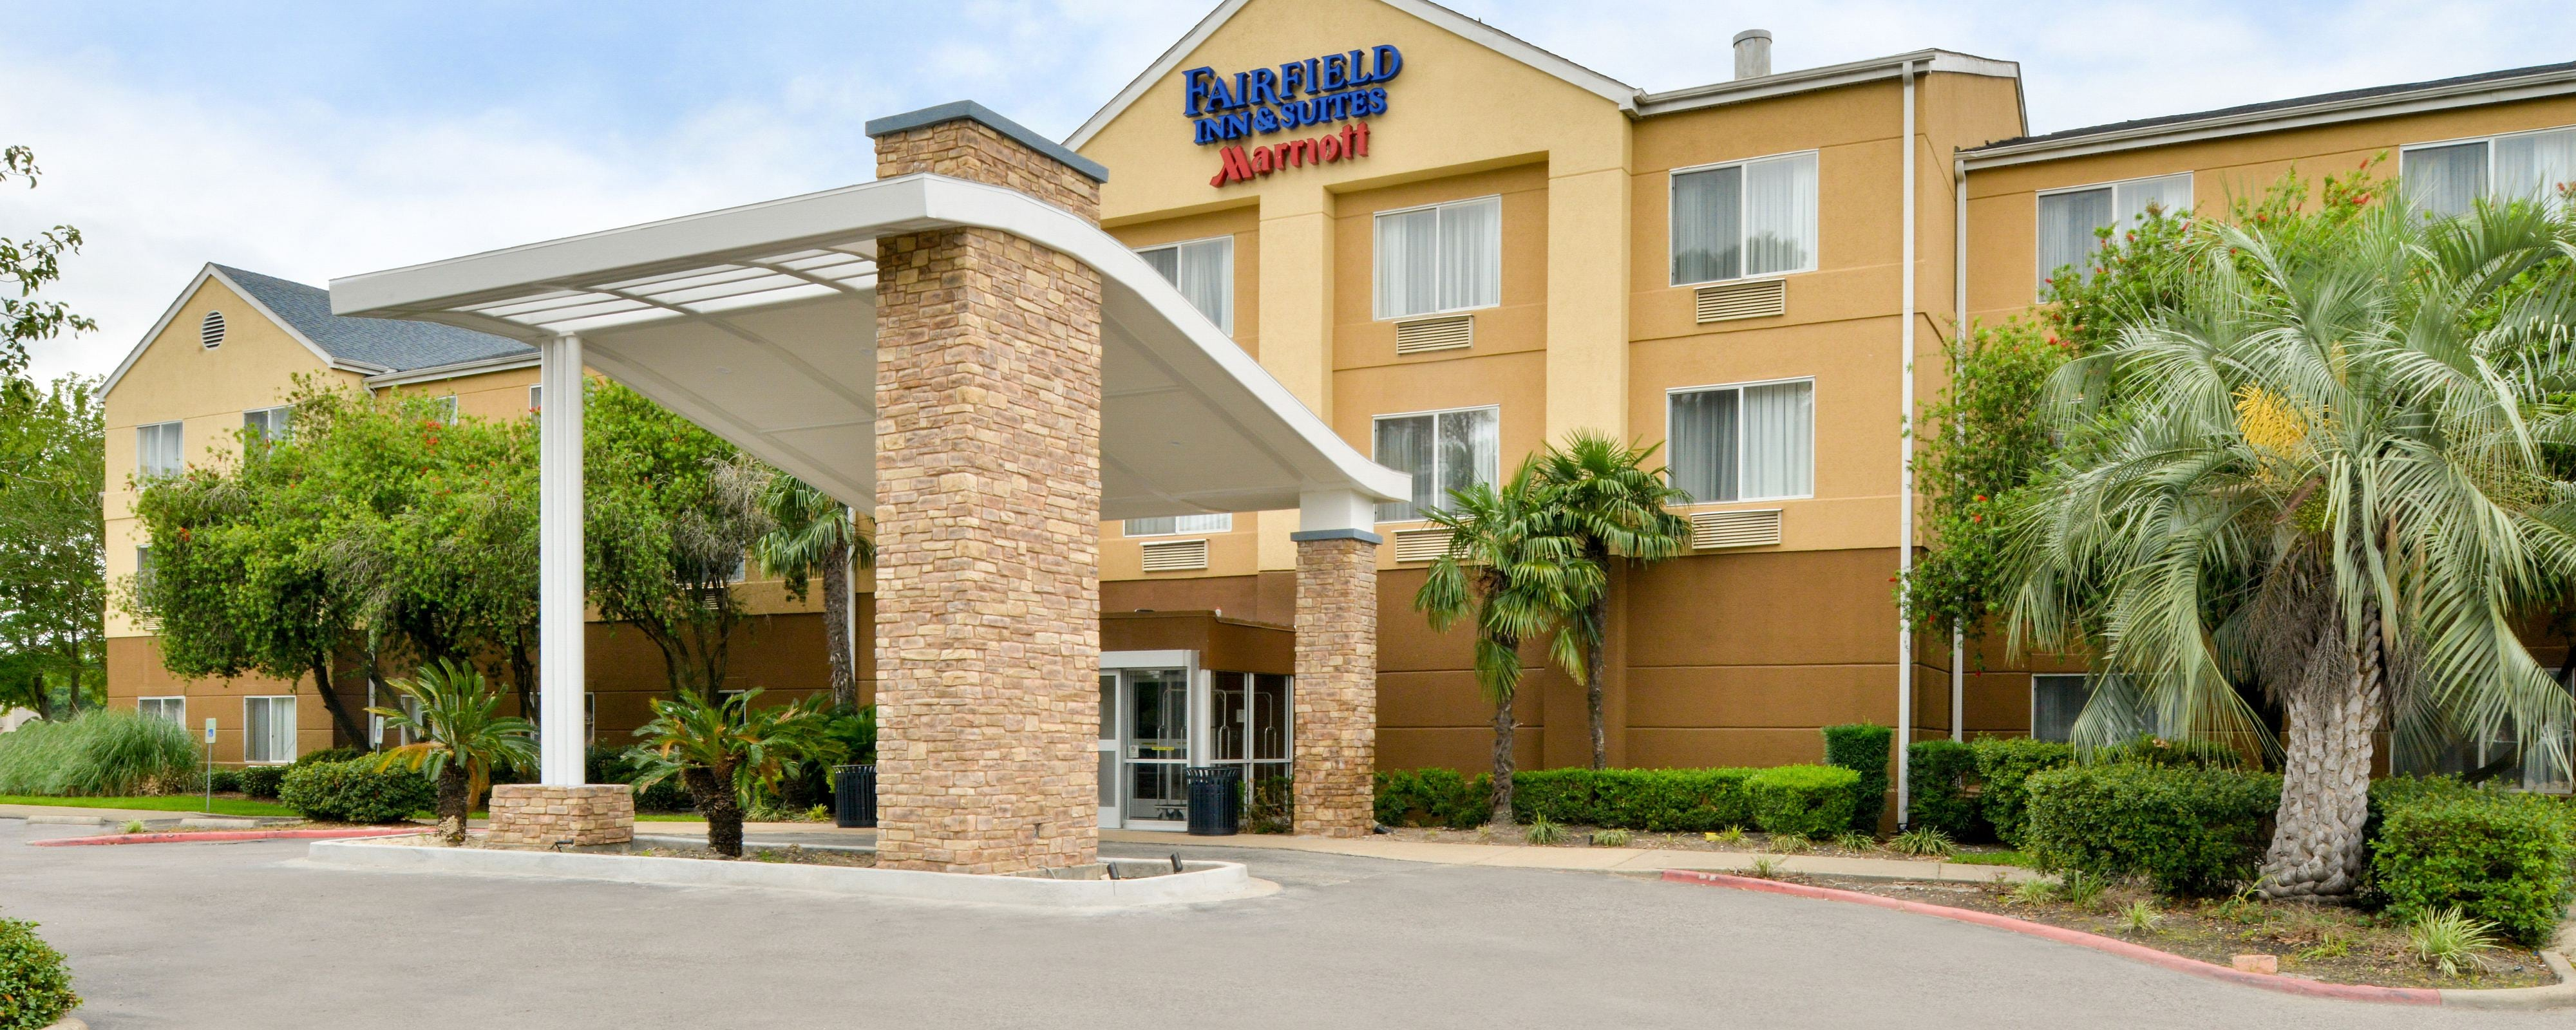 Beaumont Hotels Fairfield Inn Suites By Marriott Beaumont Hotel